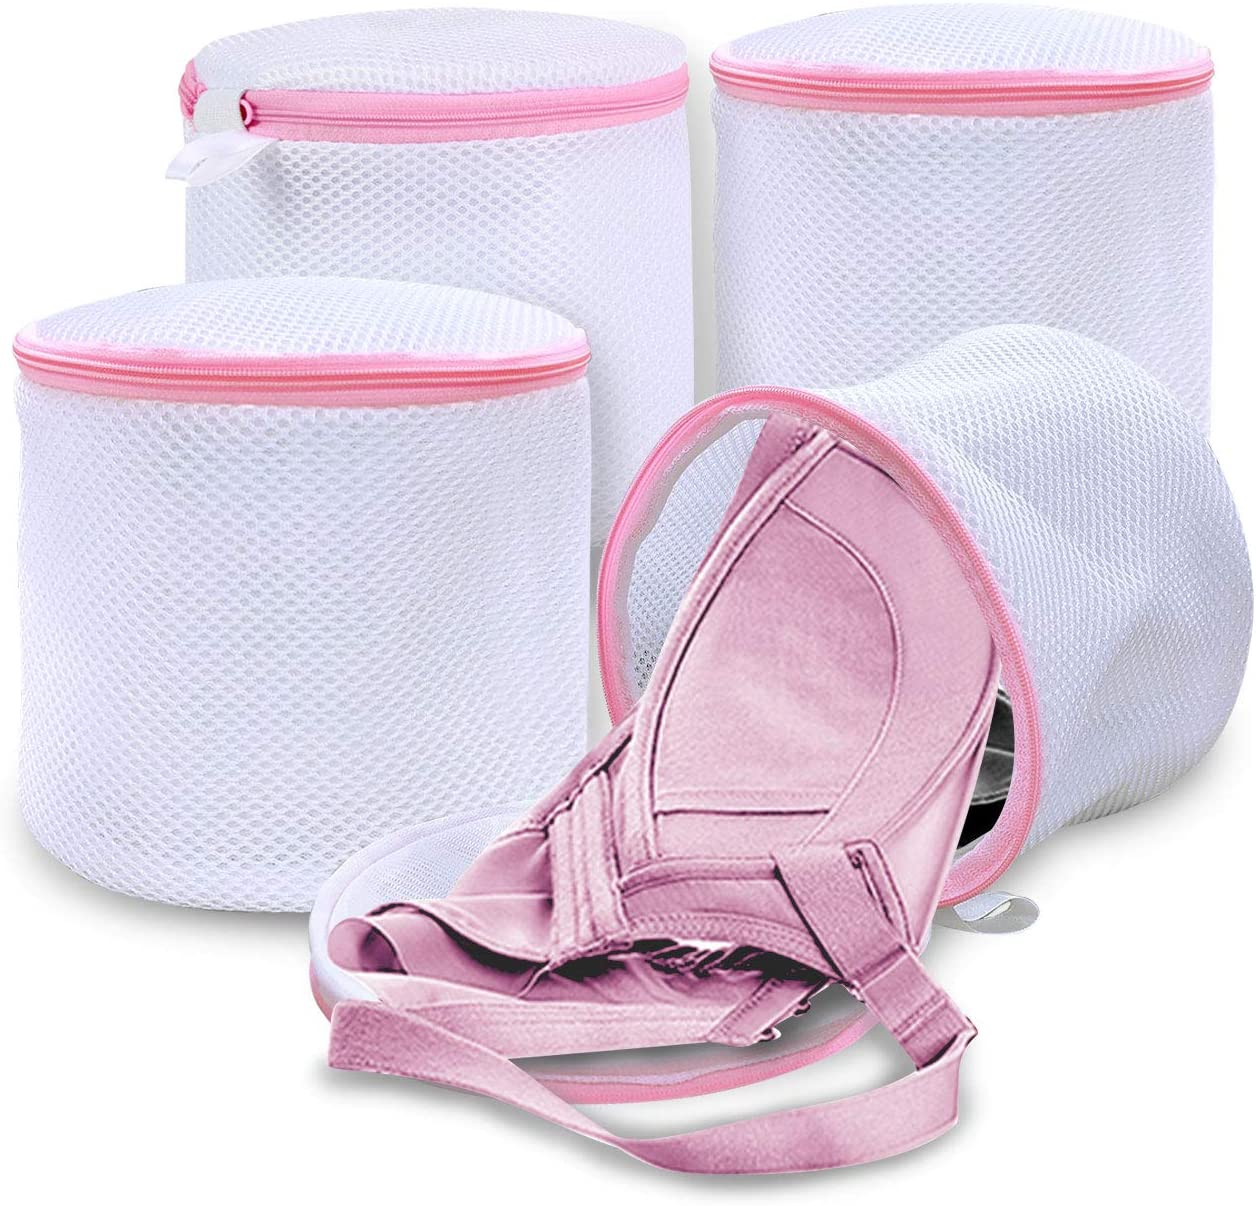 JMEXSUSS Premium Laundry Bag Mesh Wash Bags for Wash Bras Lingerie and Delicates with Premium Zipper (4 Set)